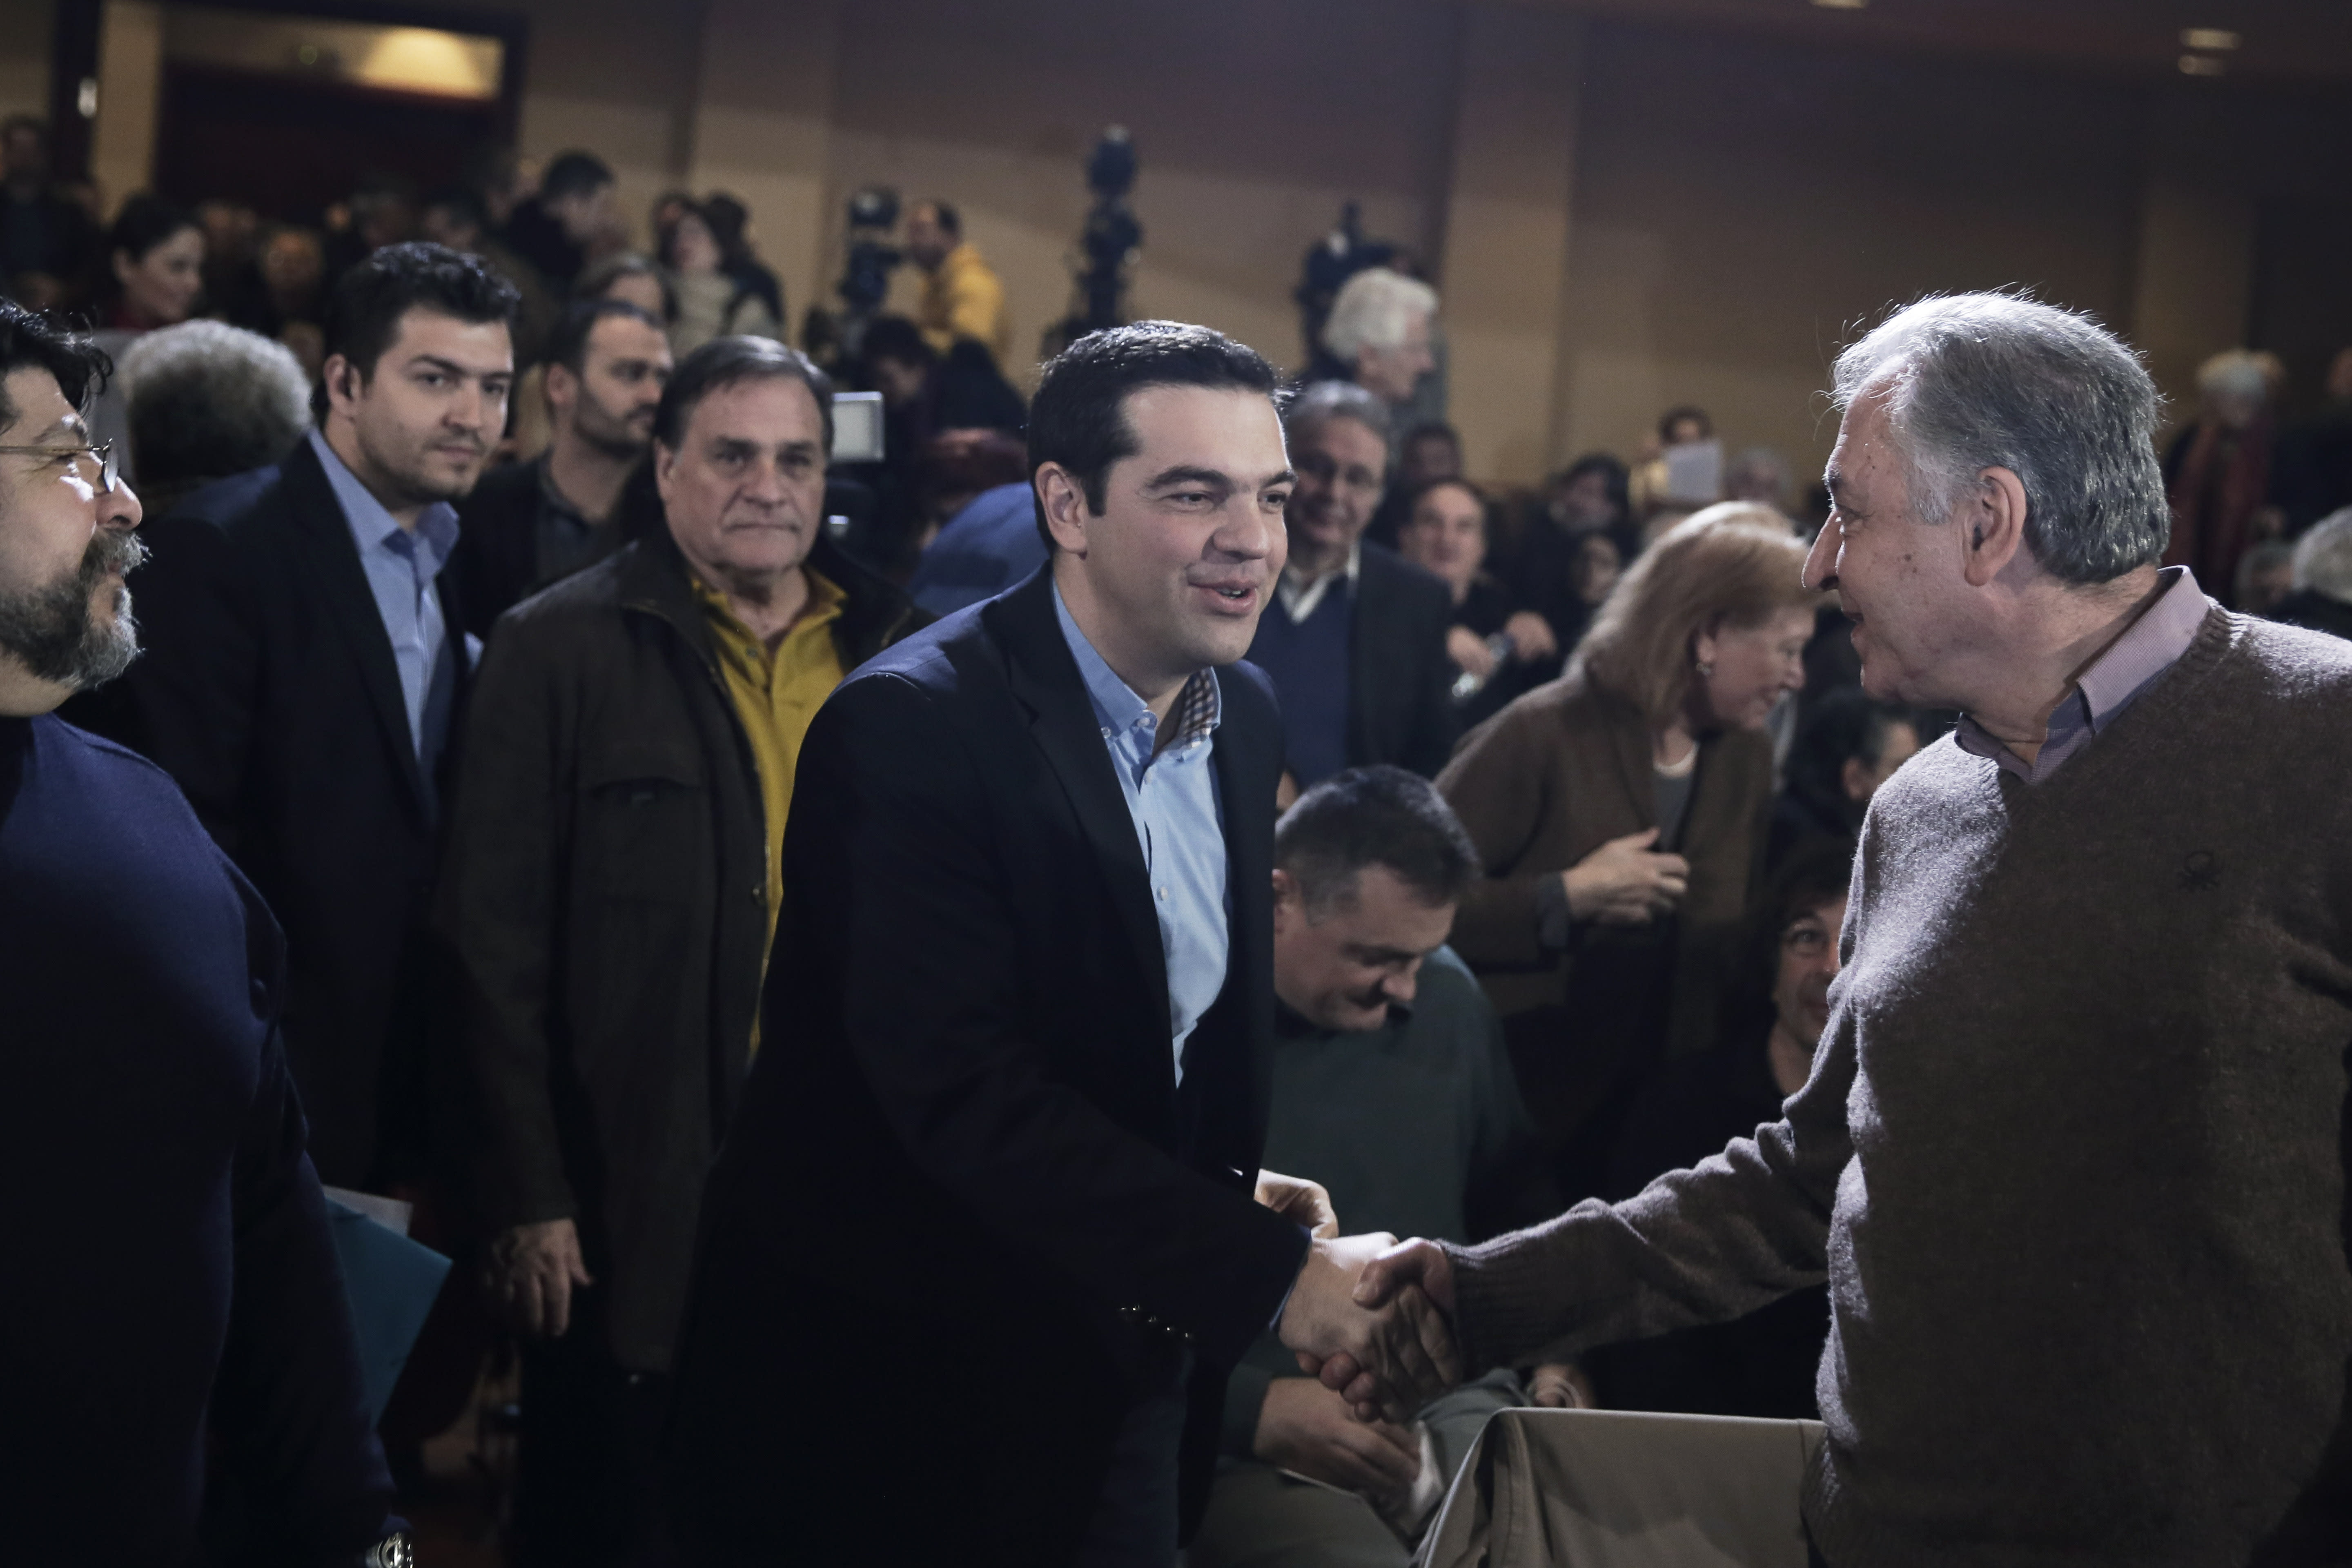 Greece will not seek another bailout, prime minister says